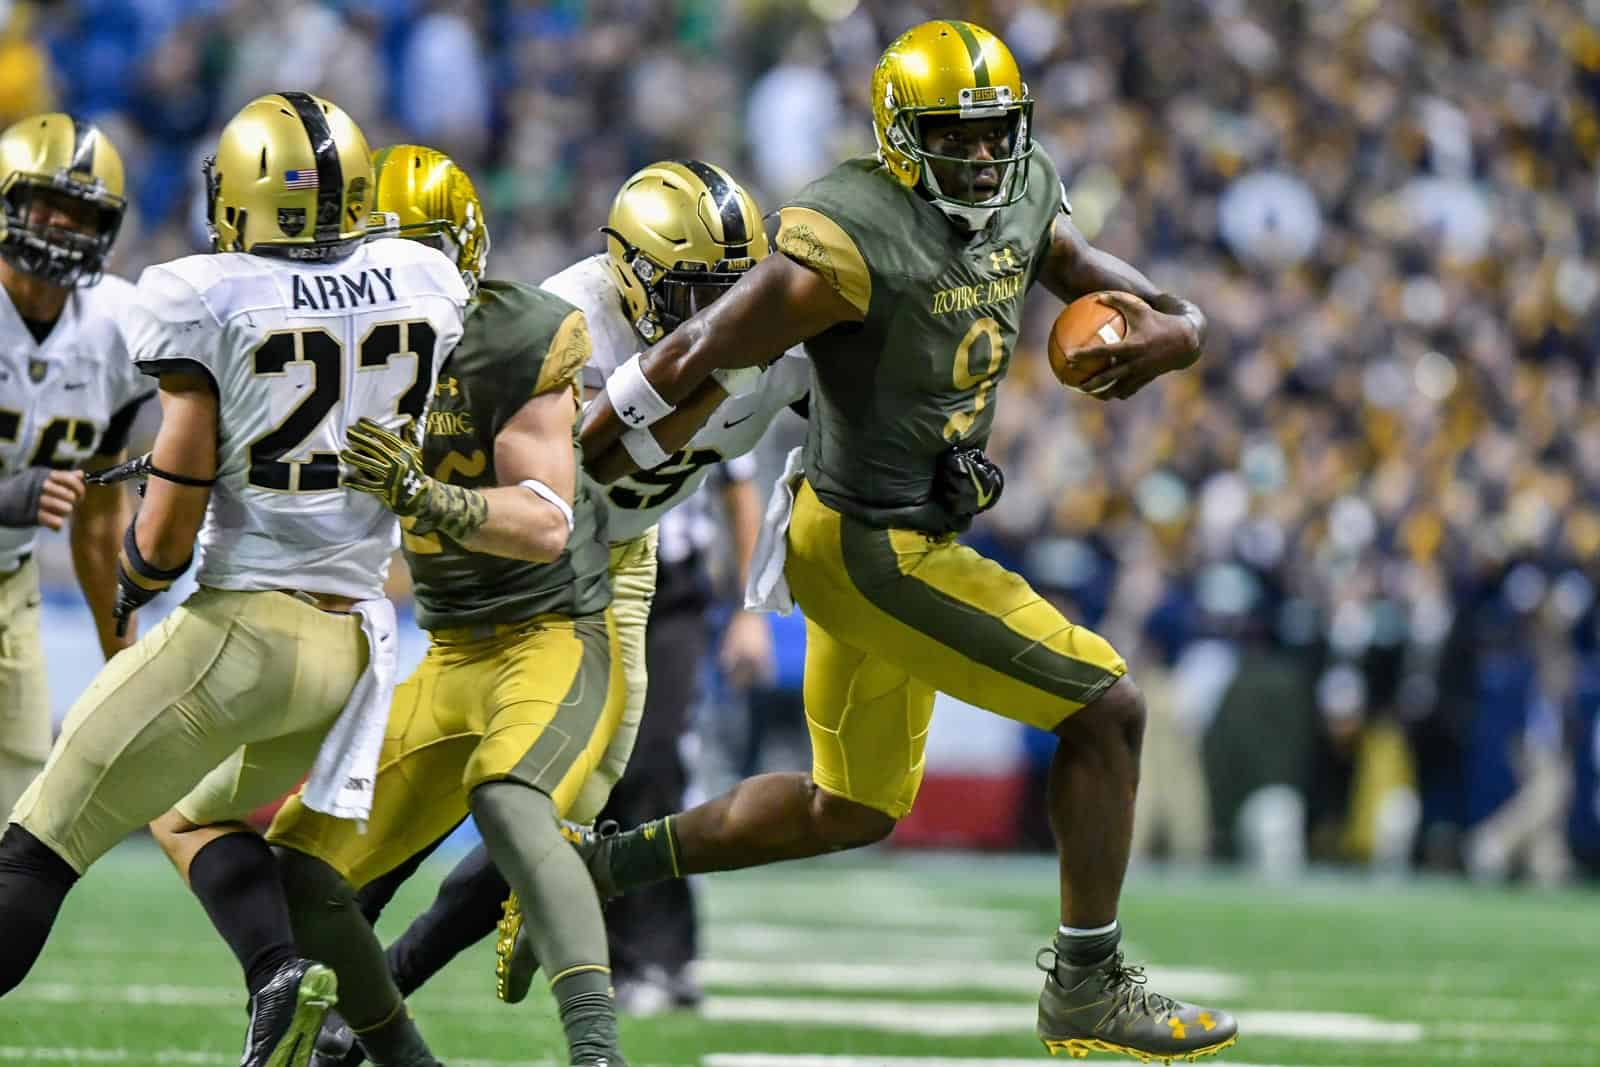 Army-Notre Dame